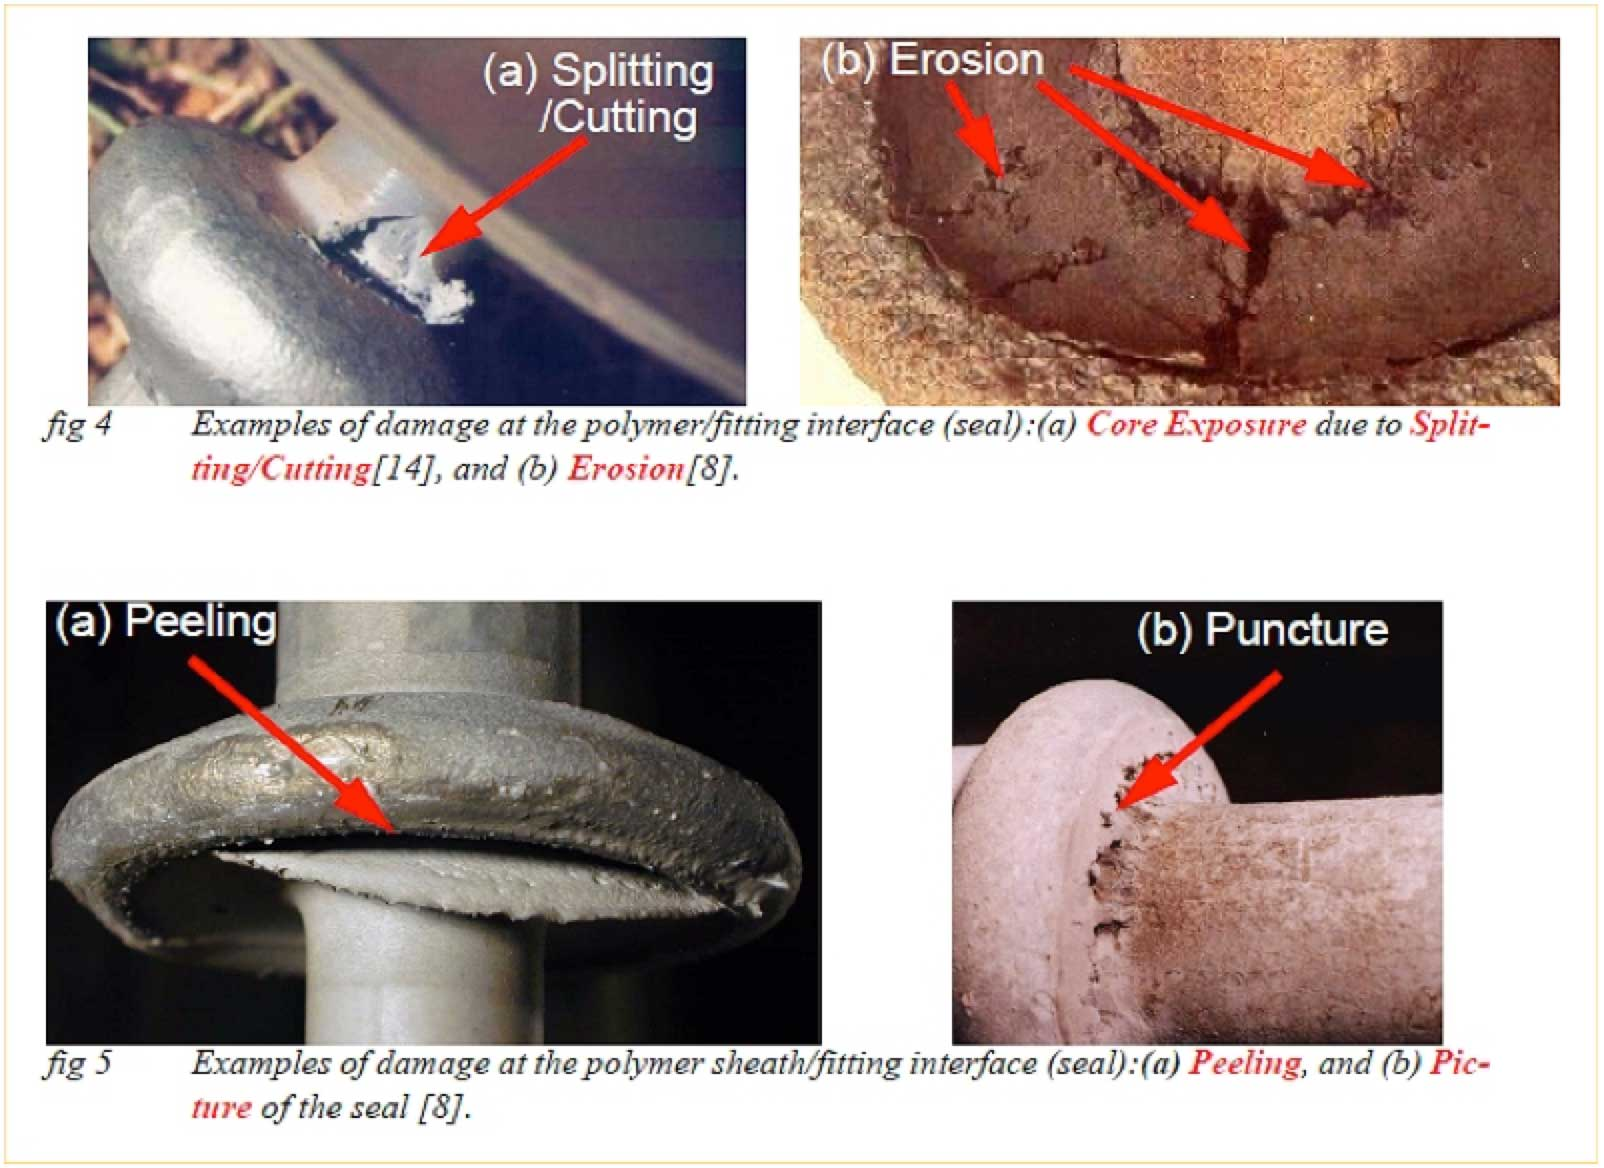 composite insulator Comparison of Methodologies to Detect Damaged Composite Insulators Photos serve as examples of types of damage that can be detected visually